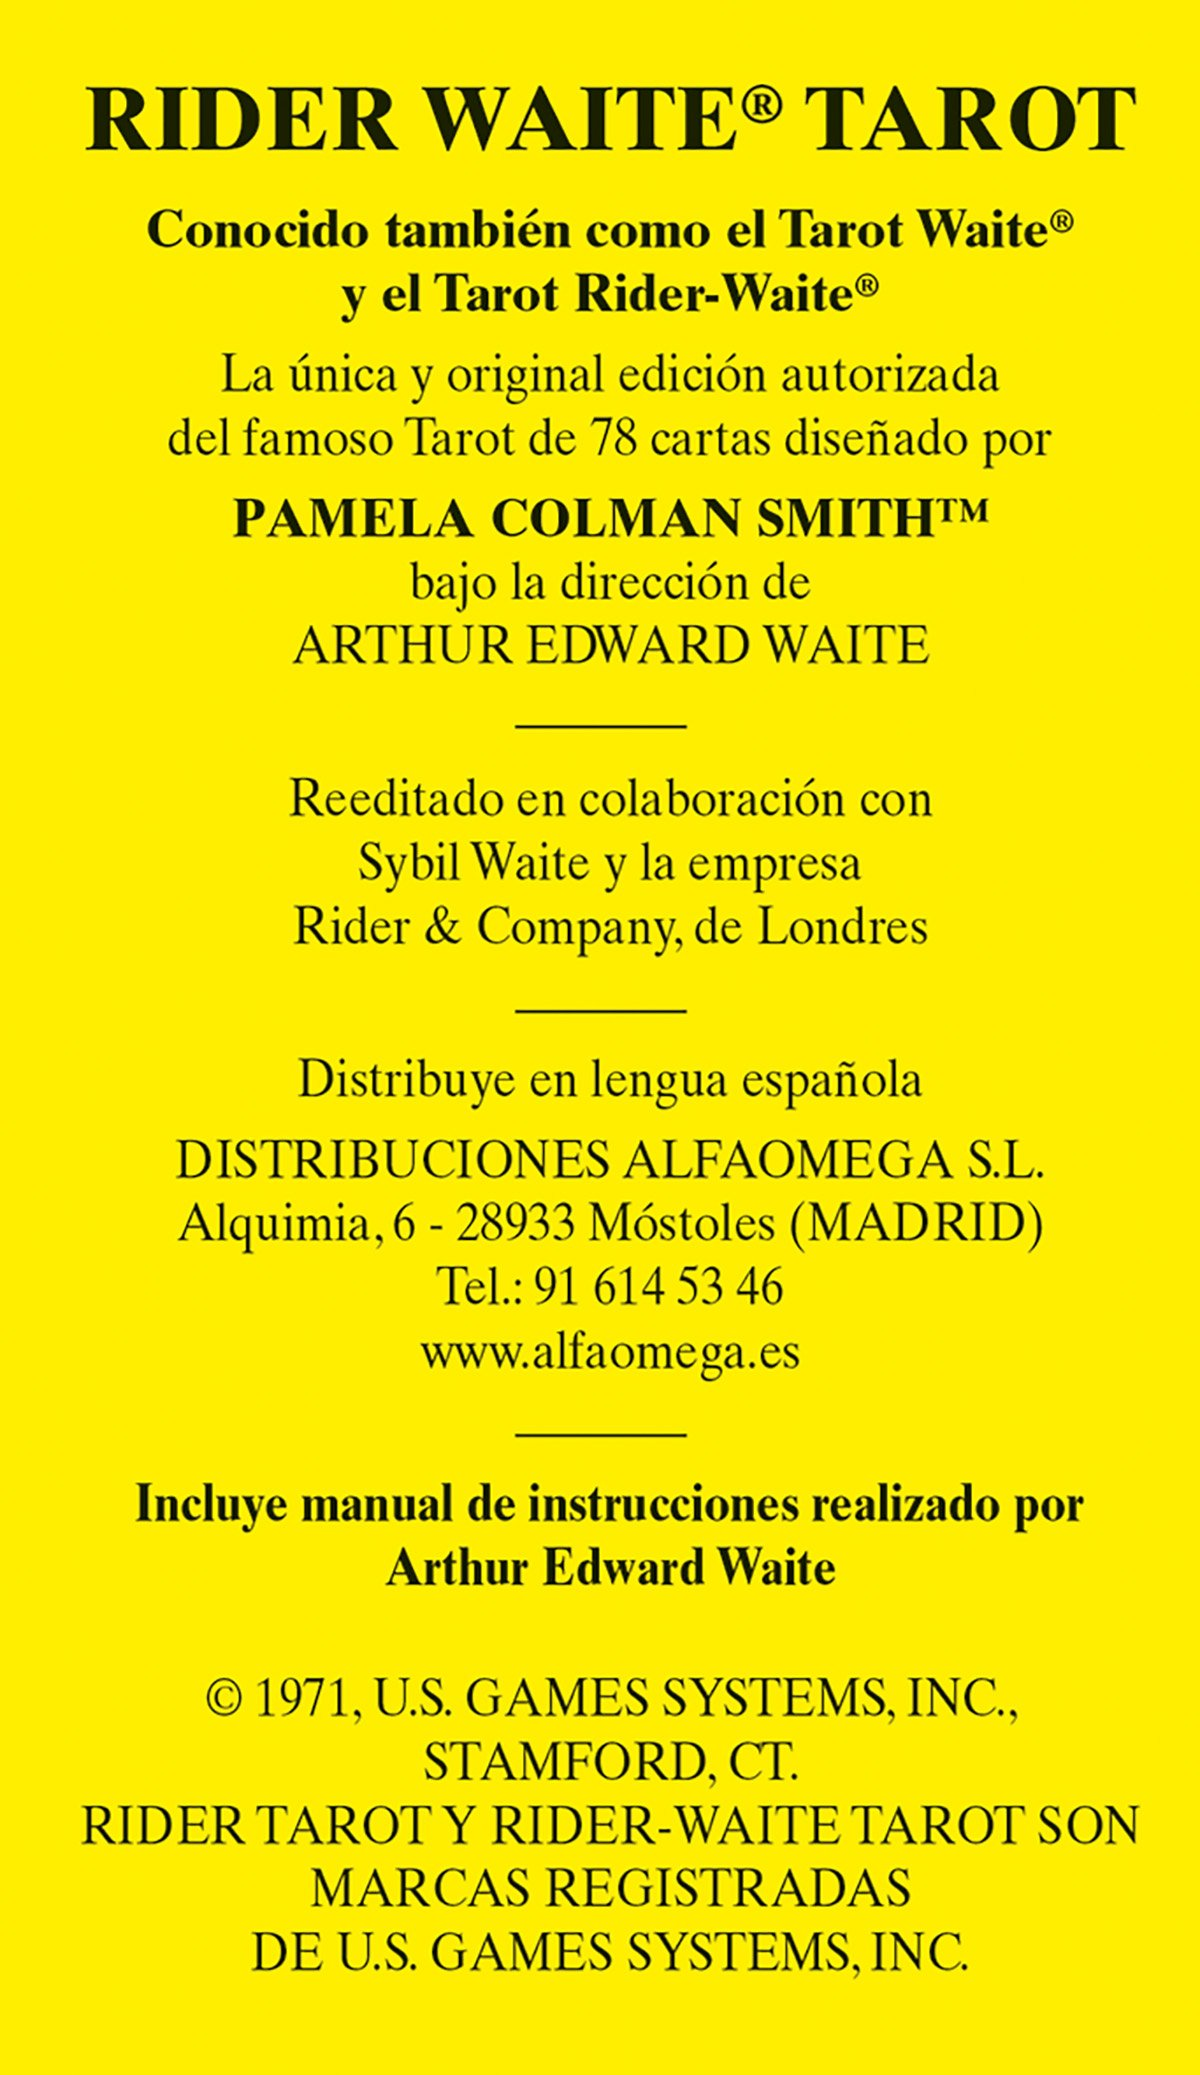 Rider Waite Tarot: Amazon.es: Arthur Edward Waite, Pamela ...